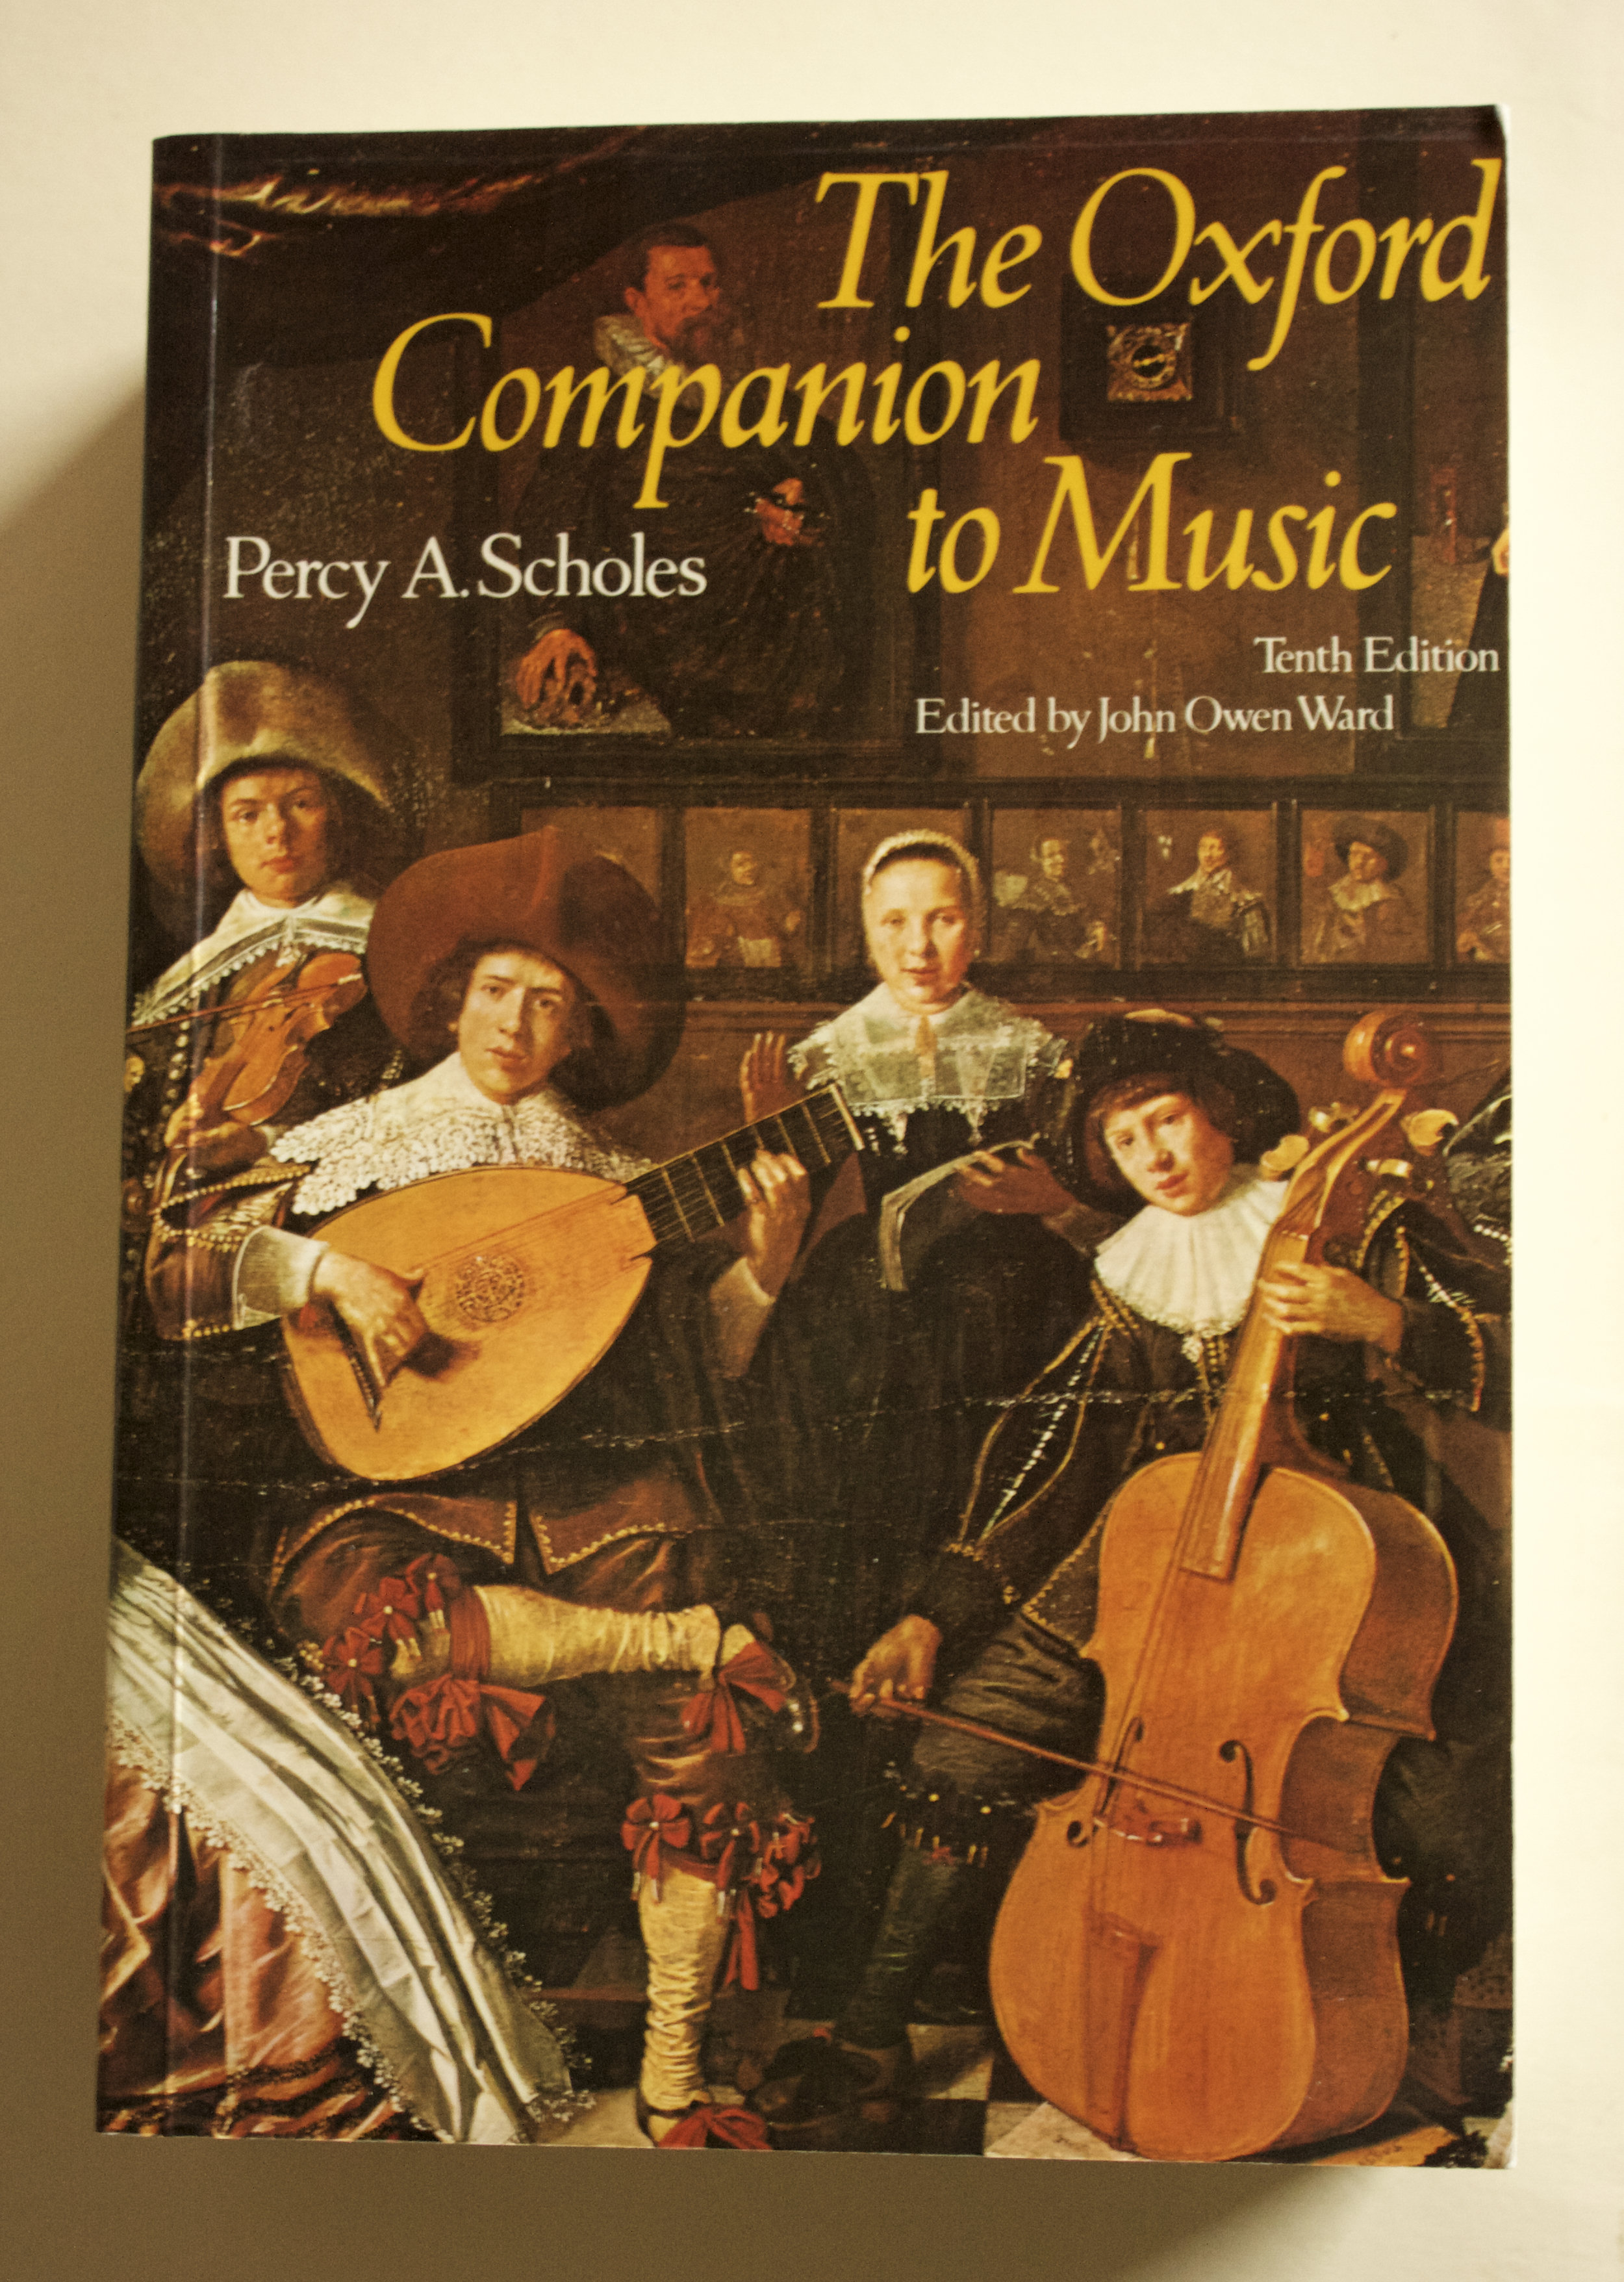 Copy of The Oxford Companion to Music (10th edition) by Percy A. Scholes, edited by John Owen Ward (O.U.P., 1991)